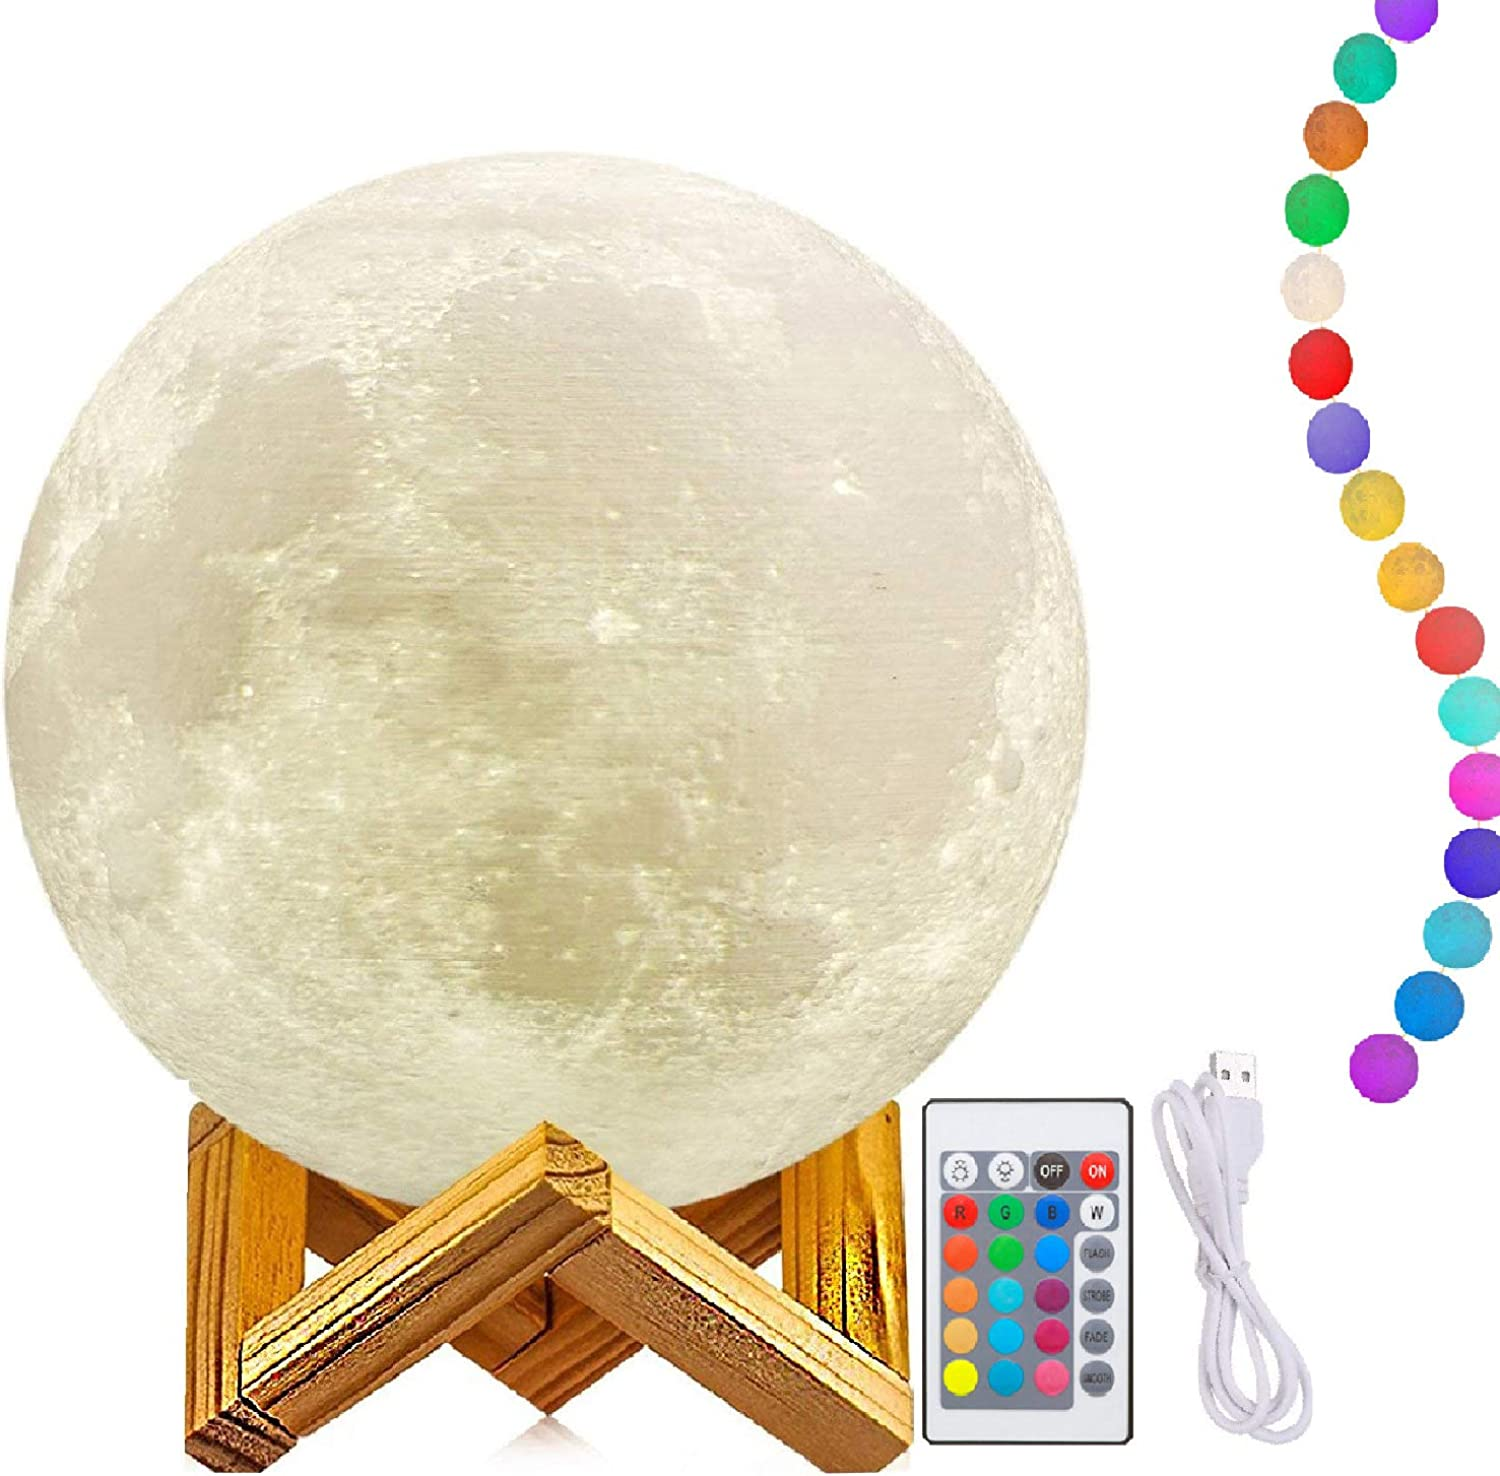 11 Inch Moon Lamp with Stand, 3D Printing Moon Light, The Moon Night Light with LED 16 colors, Touch Control and Remote Control (Diameter28CM)